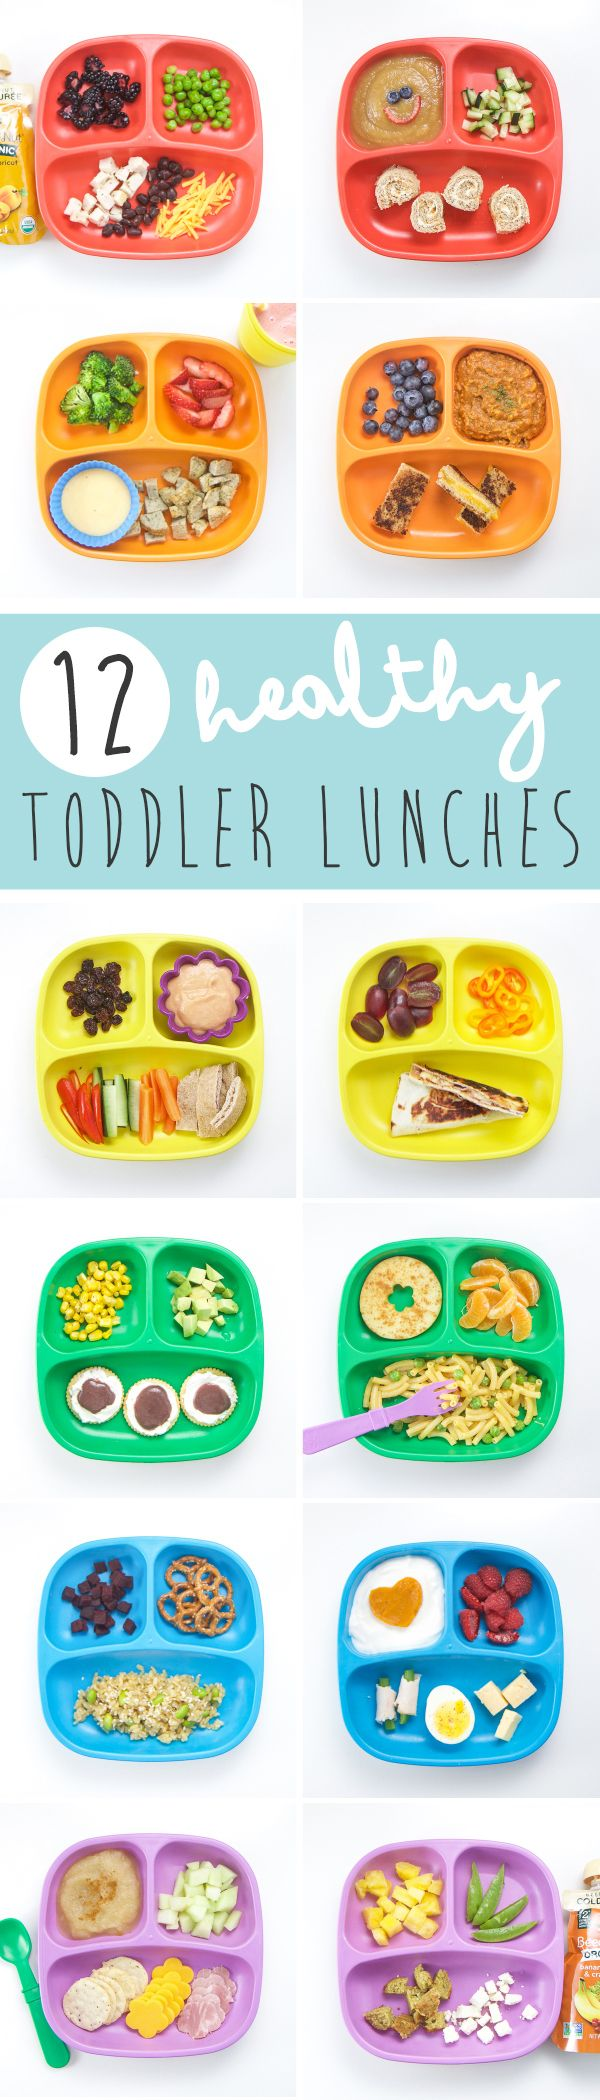 healthy toddler meals on pinterest healthy toddler food healthy